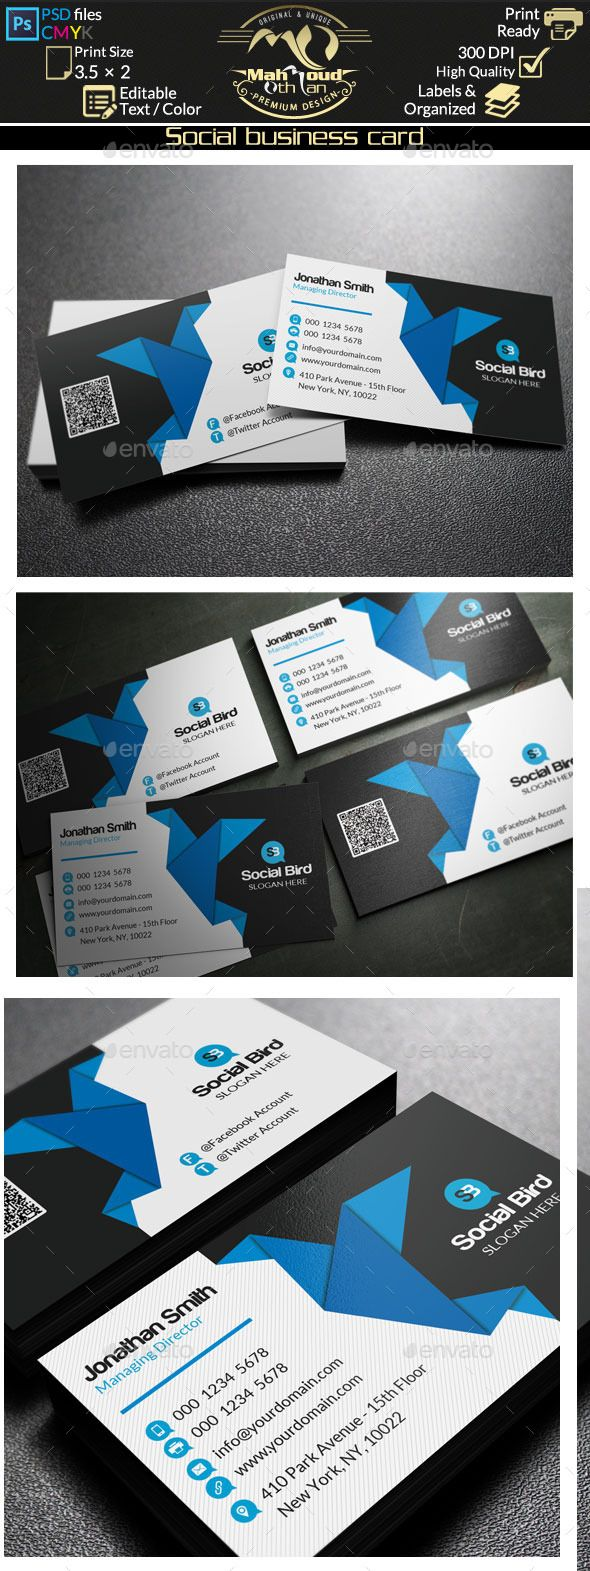 The 25 best 3d business card ideas on pinterest embossed the 25 best 3d business card ideas on pinterest embossed business cards free business card design and visit cards magicingreecefo Image collections